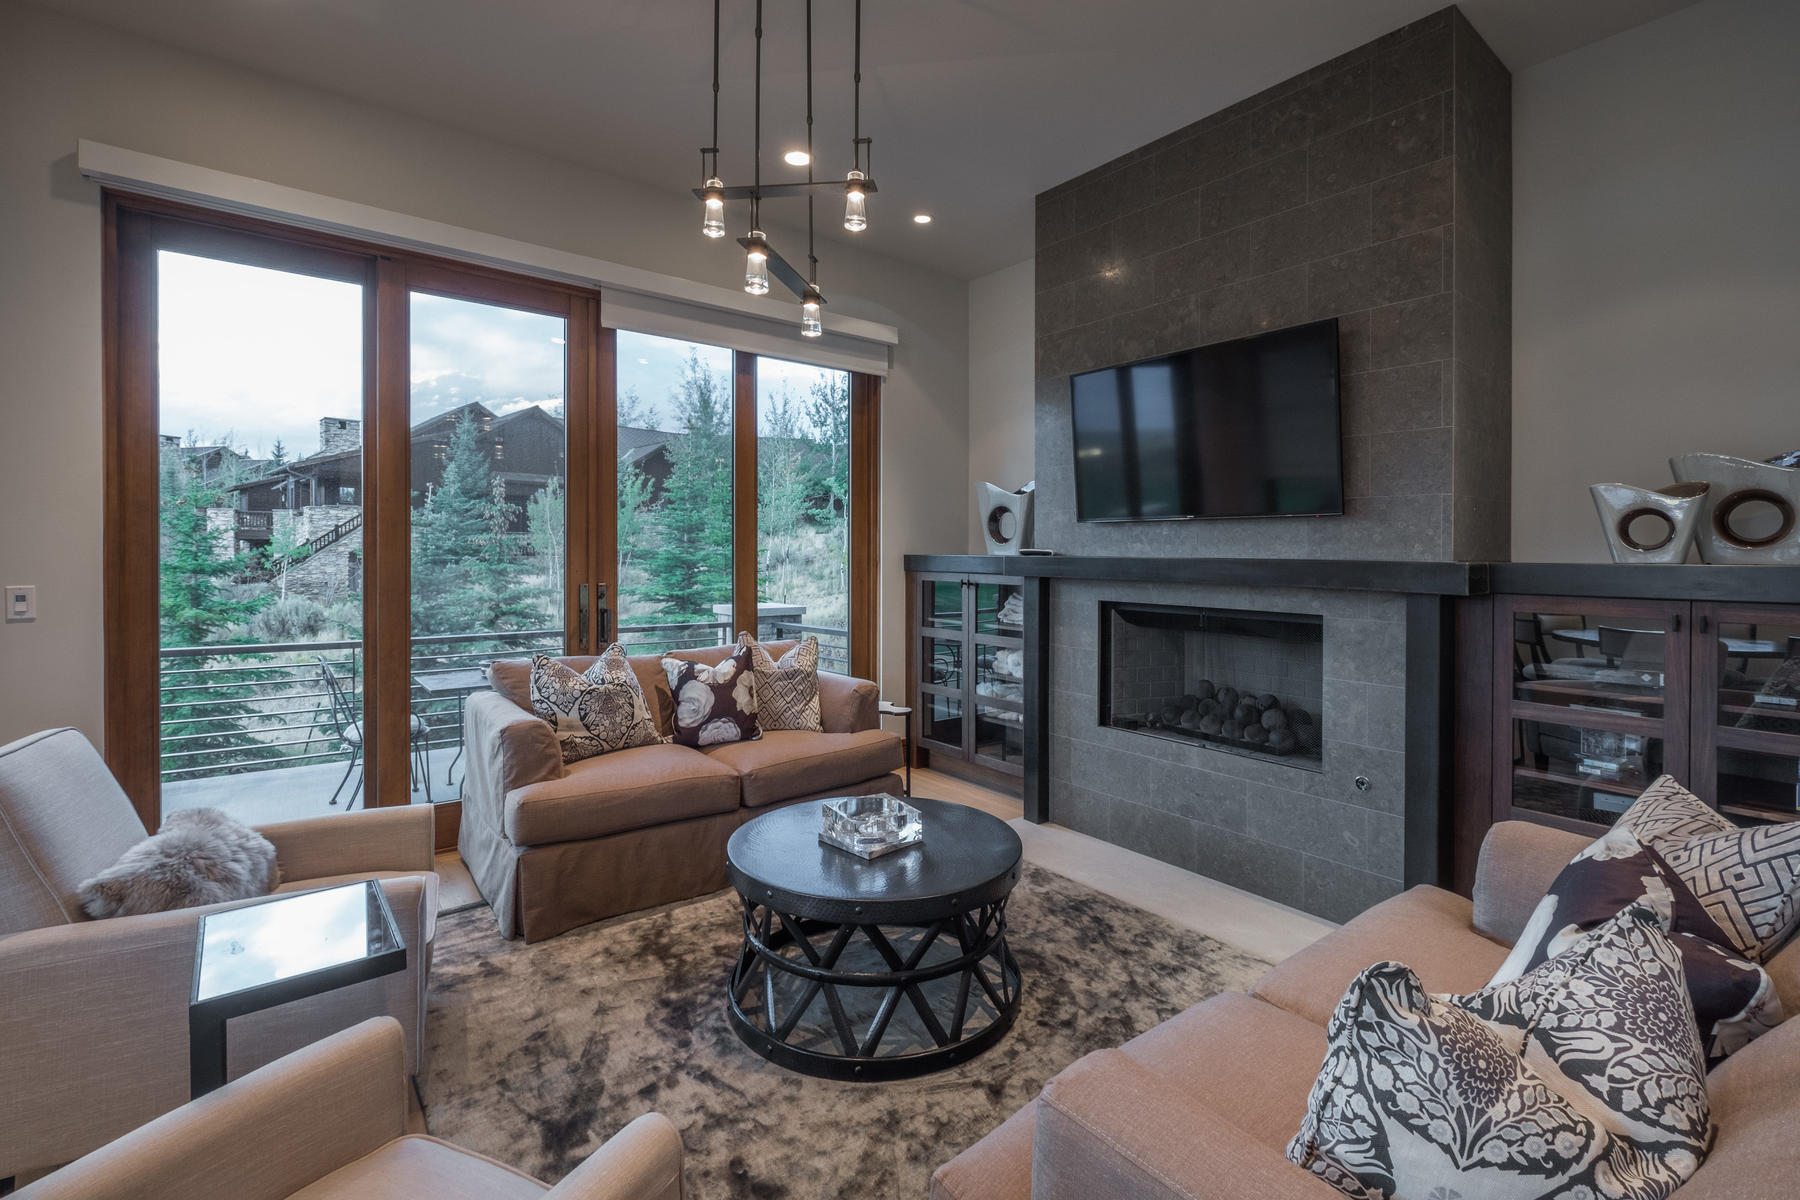 Additional photo for property listing at Beautiful Contemporary Home Overlooking the 11th Hole of the Pete Dye Course 8581 N Marmot Circle Lot 91 Park City, Utah 84098 United States